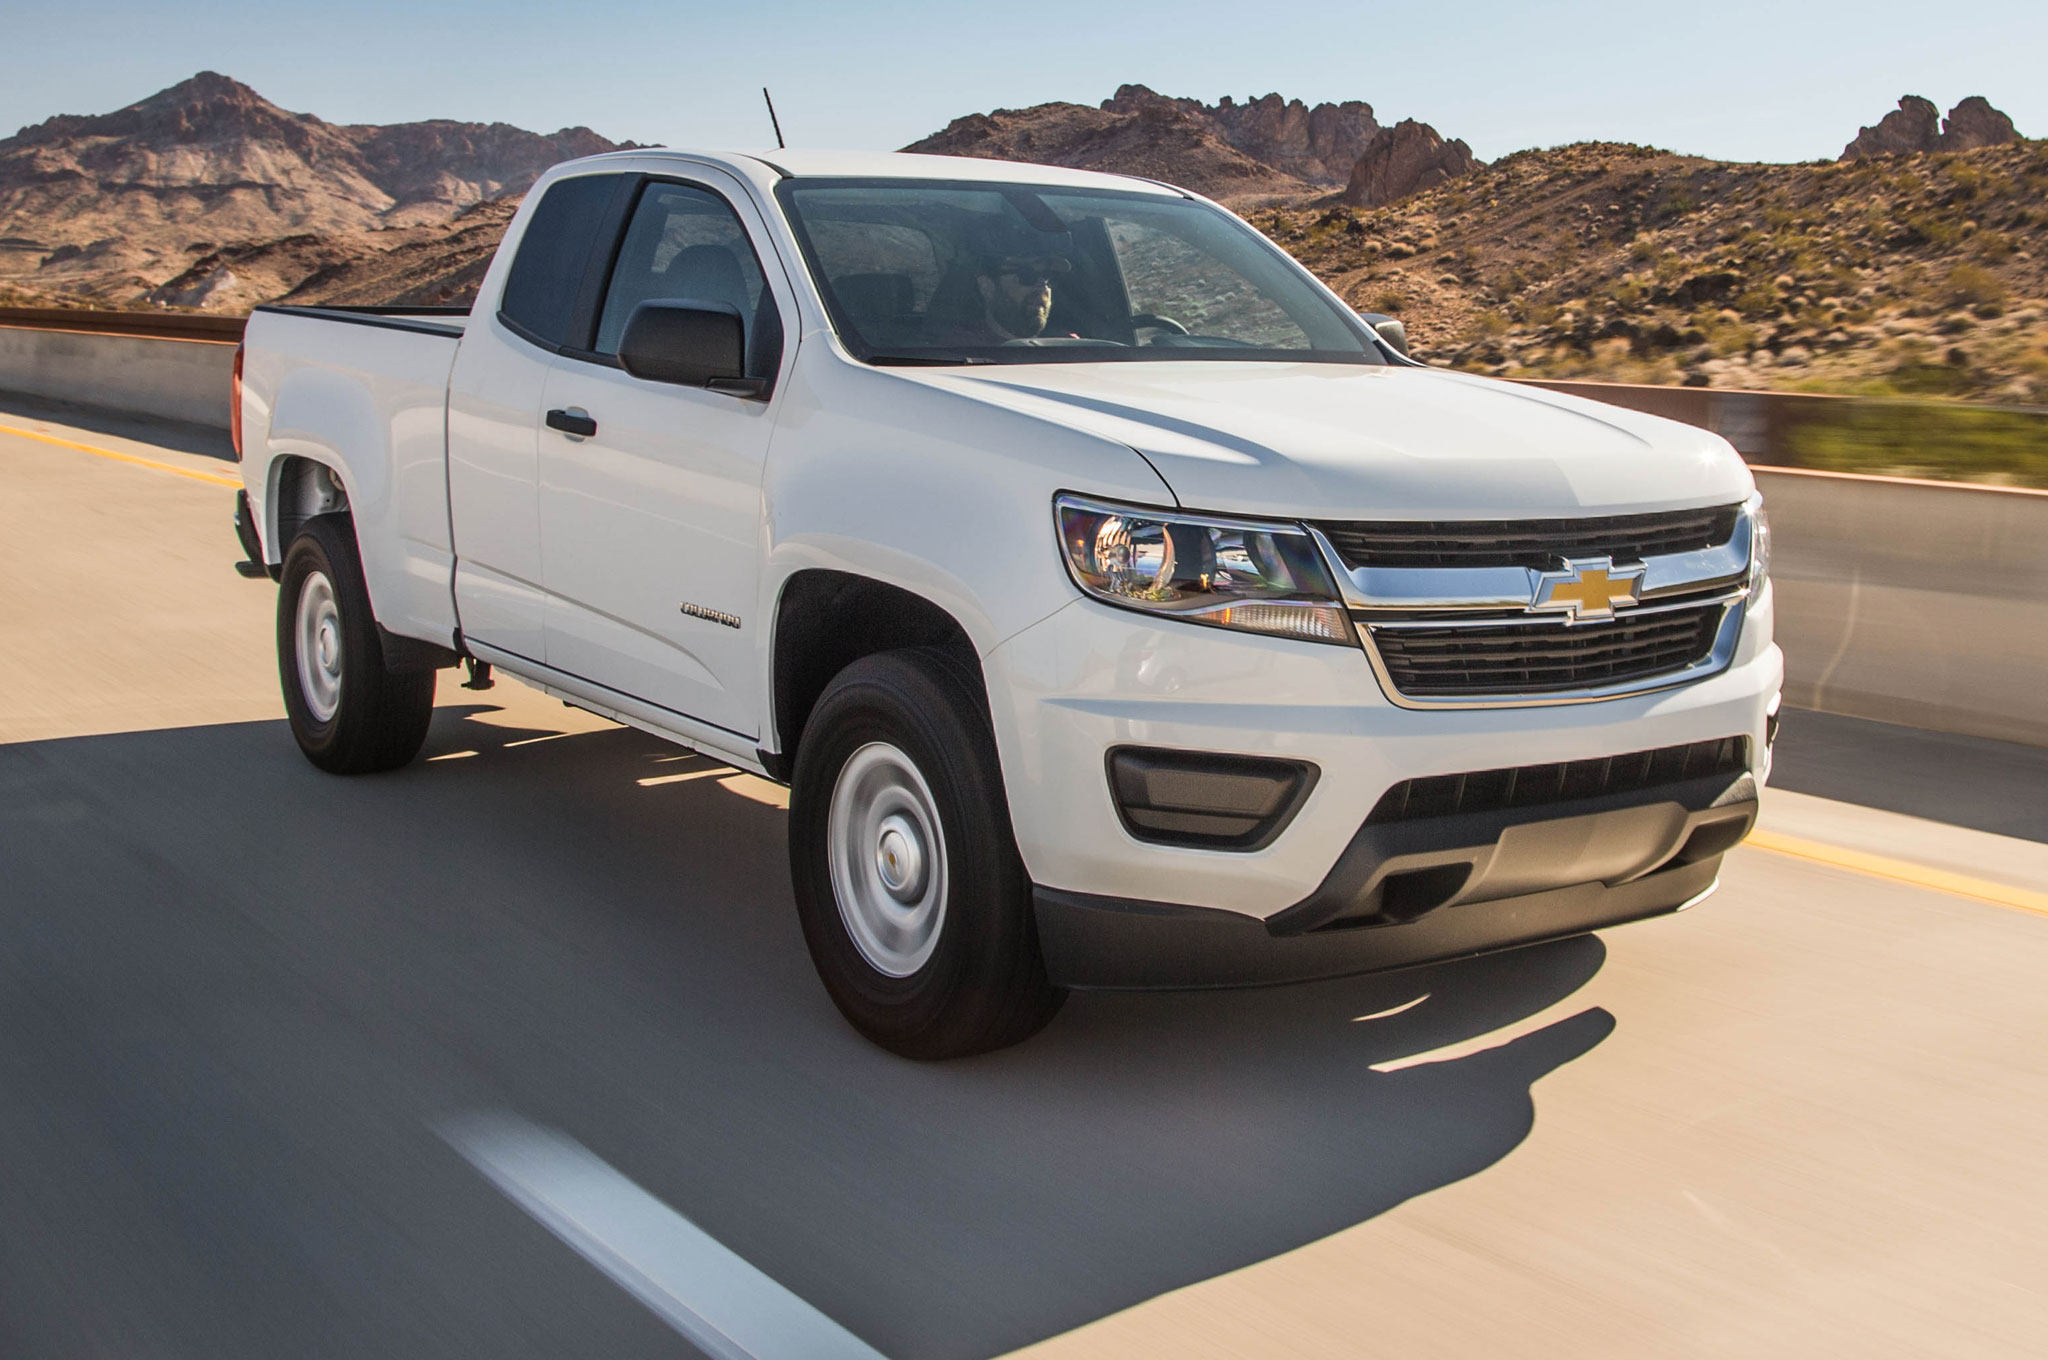 chevrolet colorado wt 2 5 2015 primera prueba. Black Bedroom Furniture Sets. Home Design Ideas